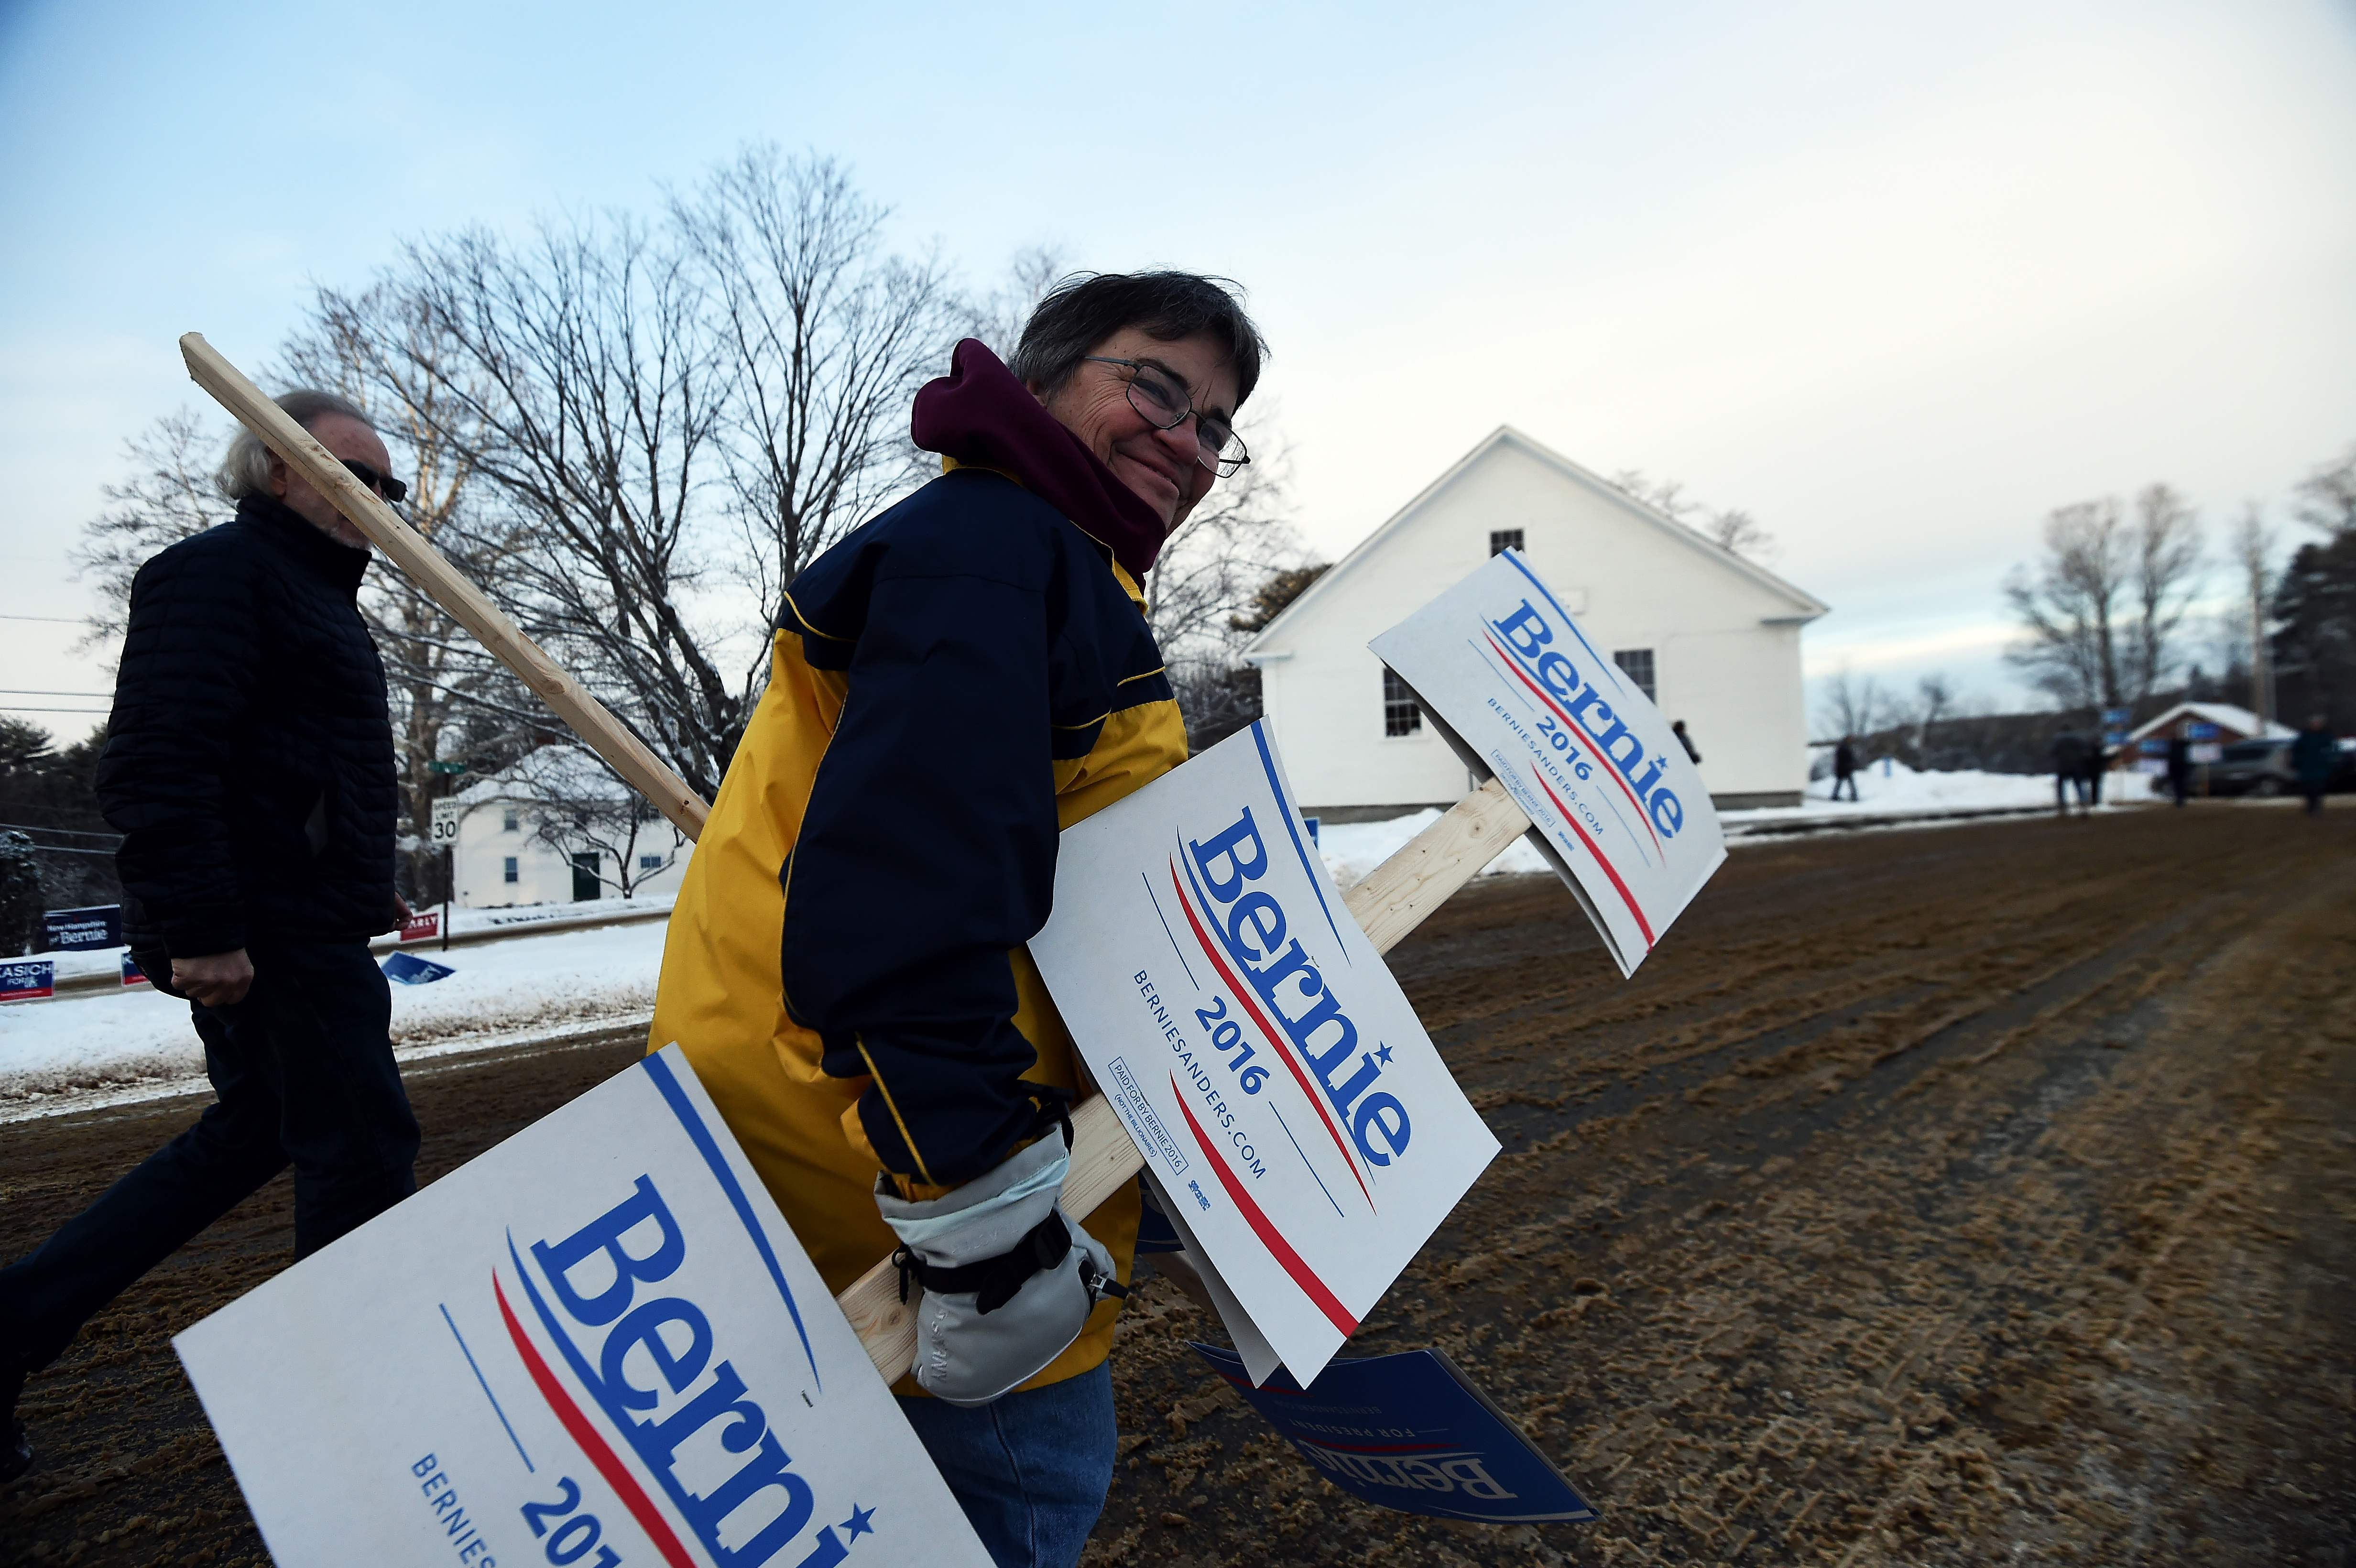 A supporter of Democratic presidential candidate Bernie Sanders arrives with campaign posters in Canterbury, New Hampshire.